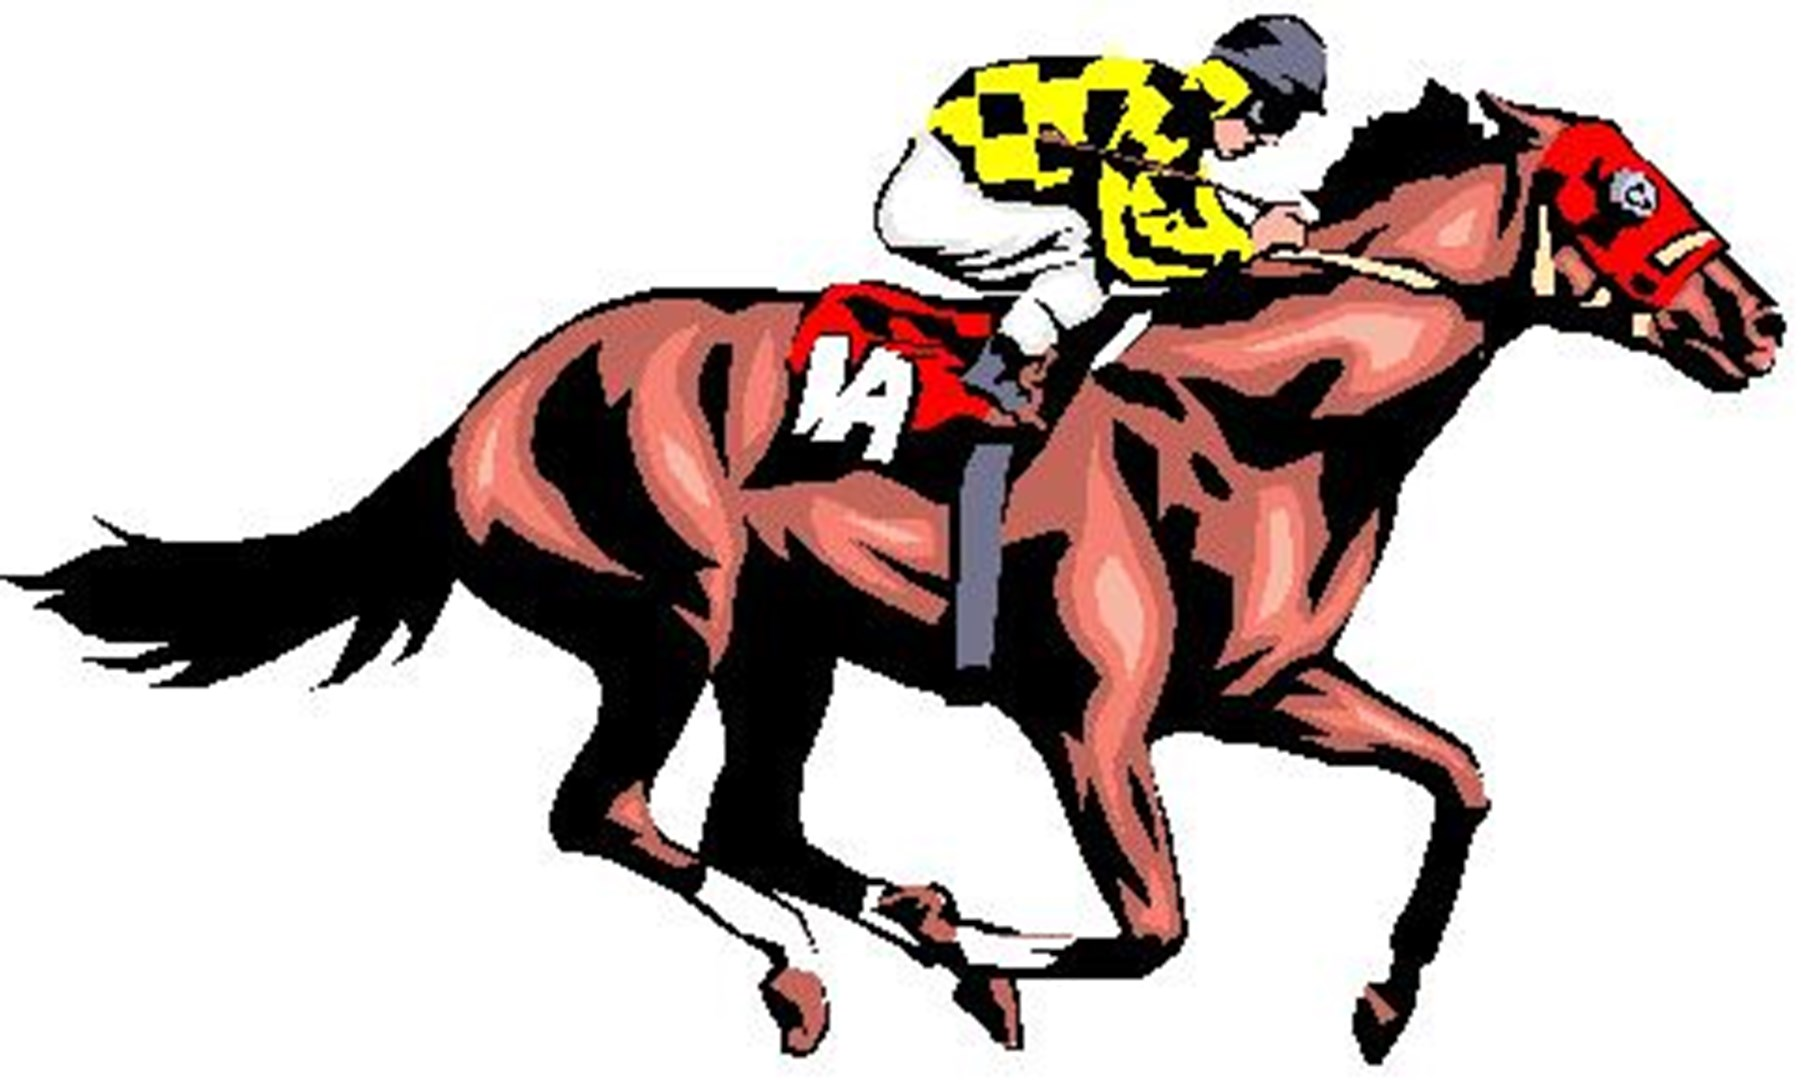 horse and jockey clipart at getdrawings com free for personal use rh getdrawings com horse racing clipart black and white horse racing clipart black and white